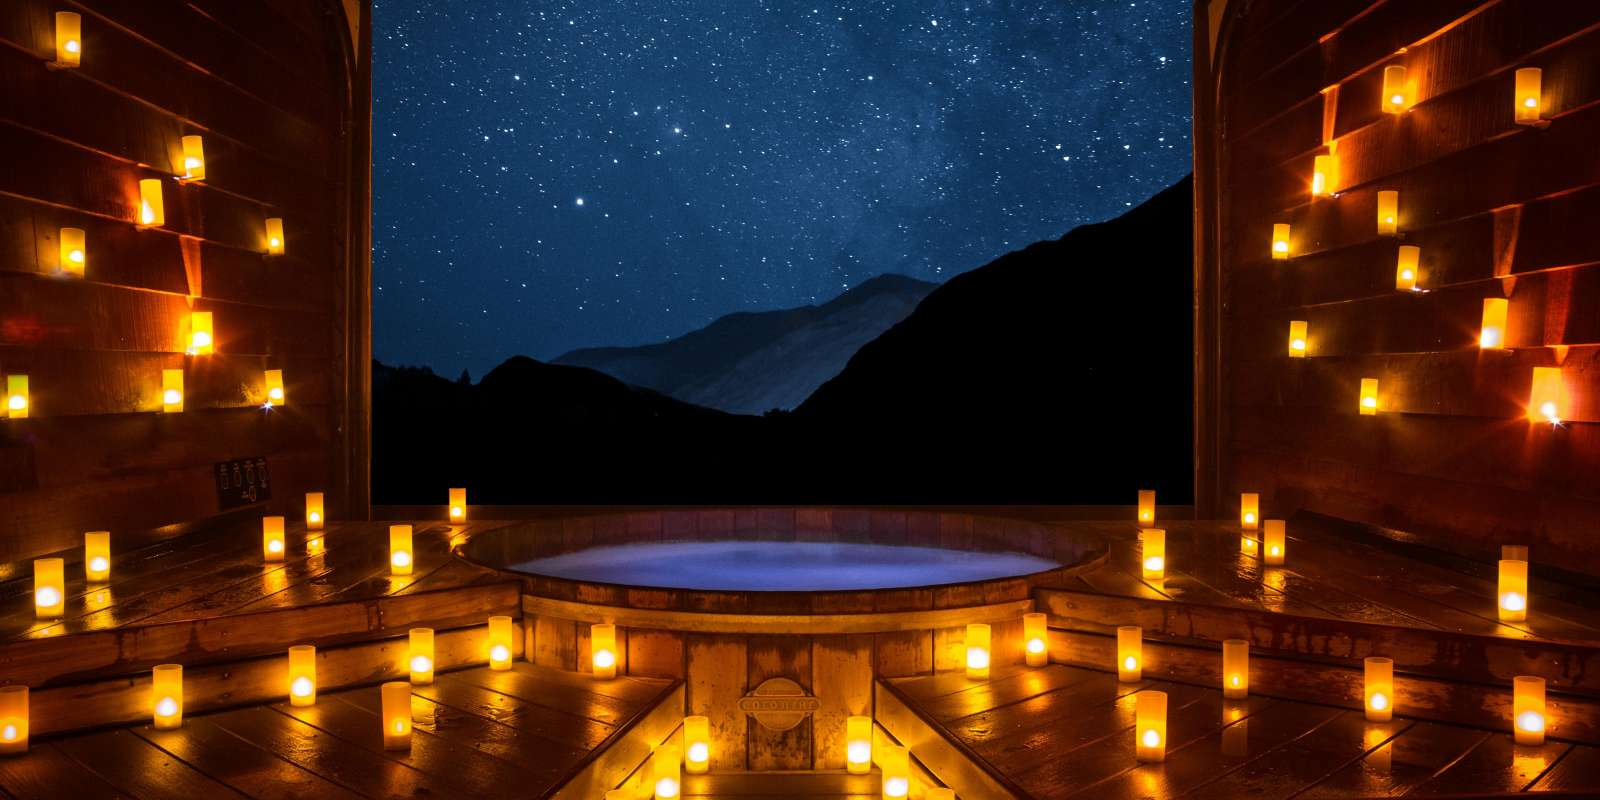 Onsen Hot Pools by night